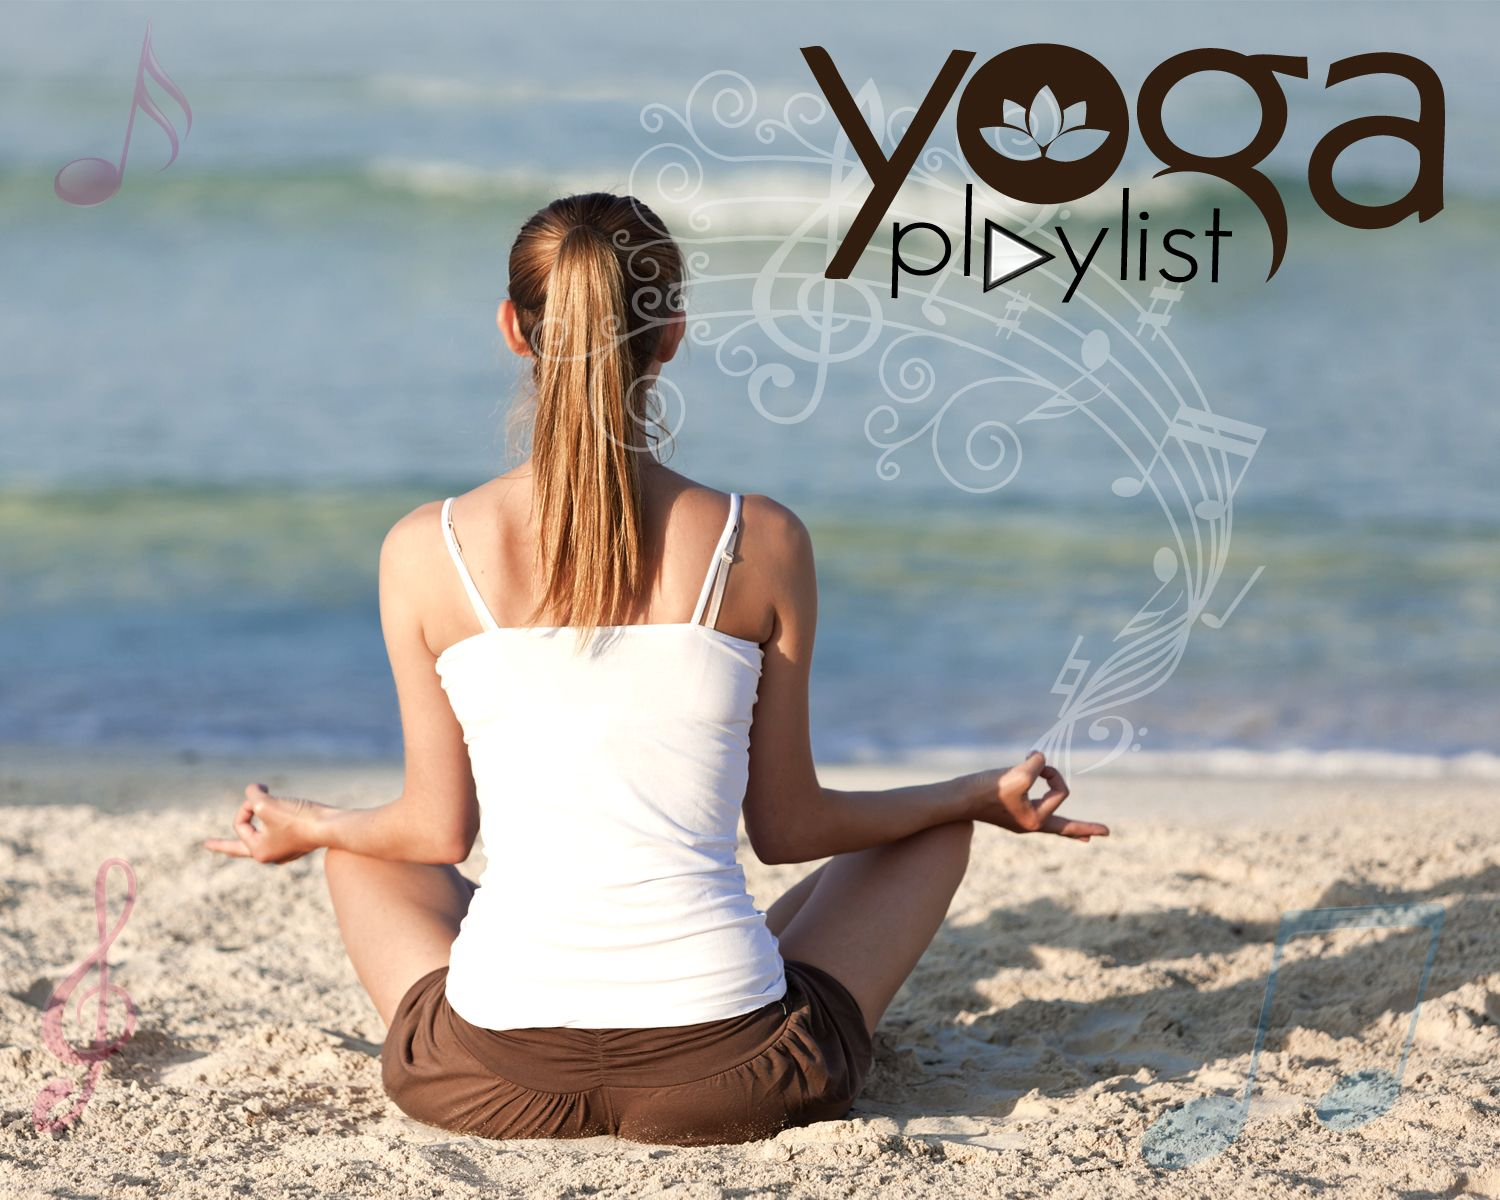 Re-balance your mind & body with yoga this morning.   http://www.fitnessrepublic.com/playlist/playlist-for-yoga-9th-june-to-16th-june-2014.html